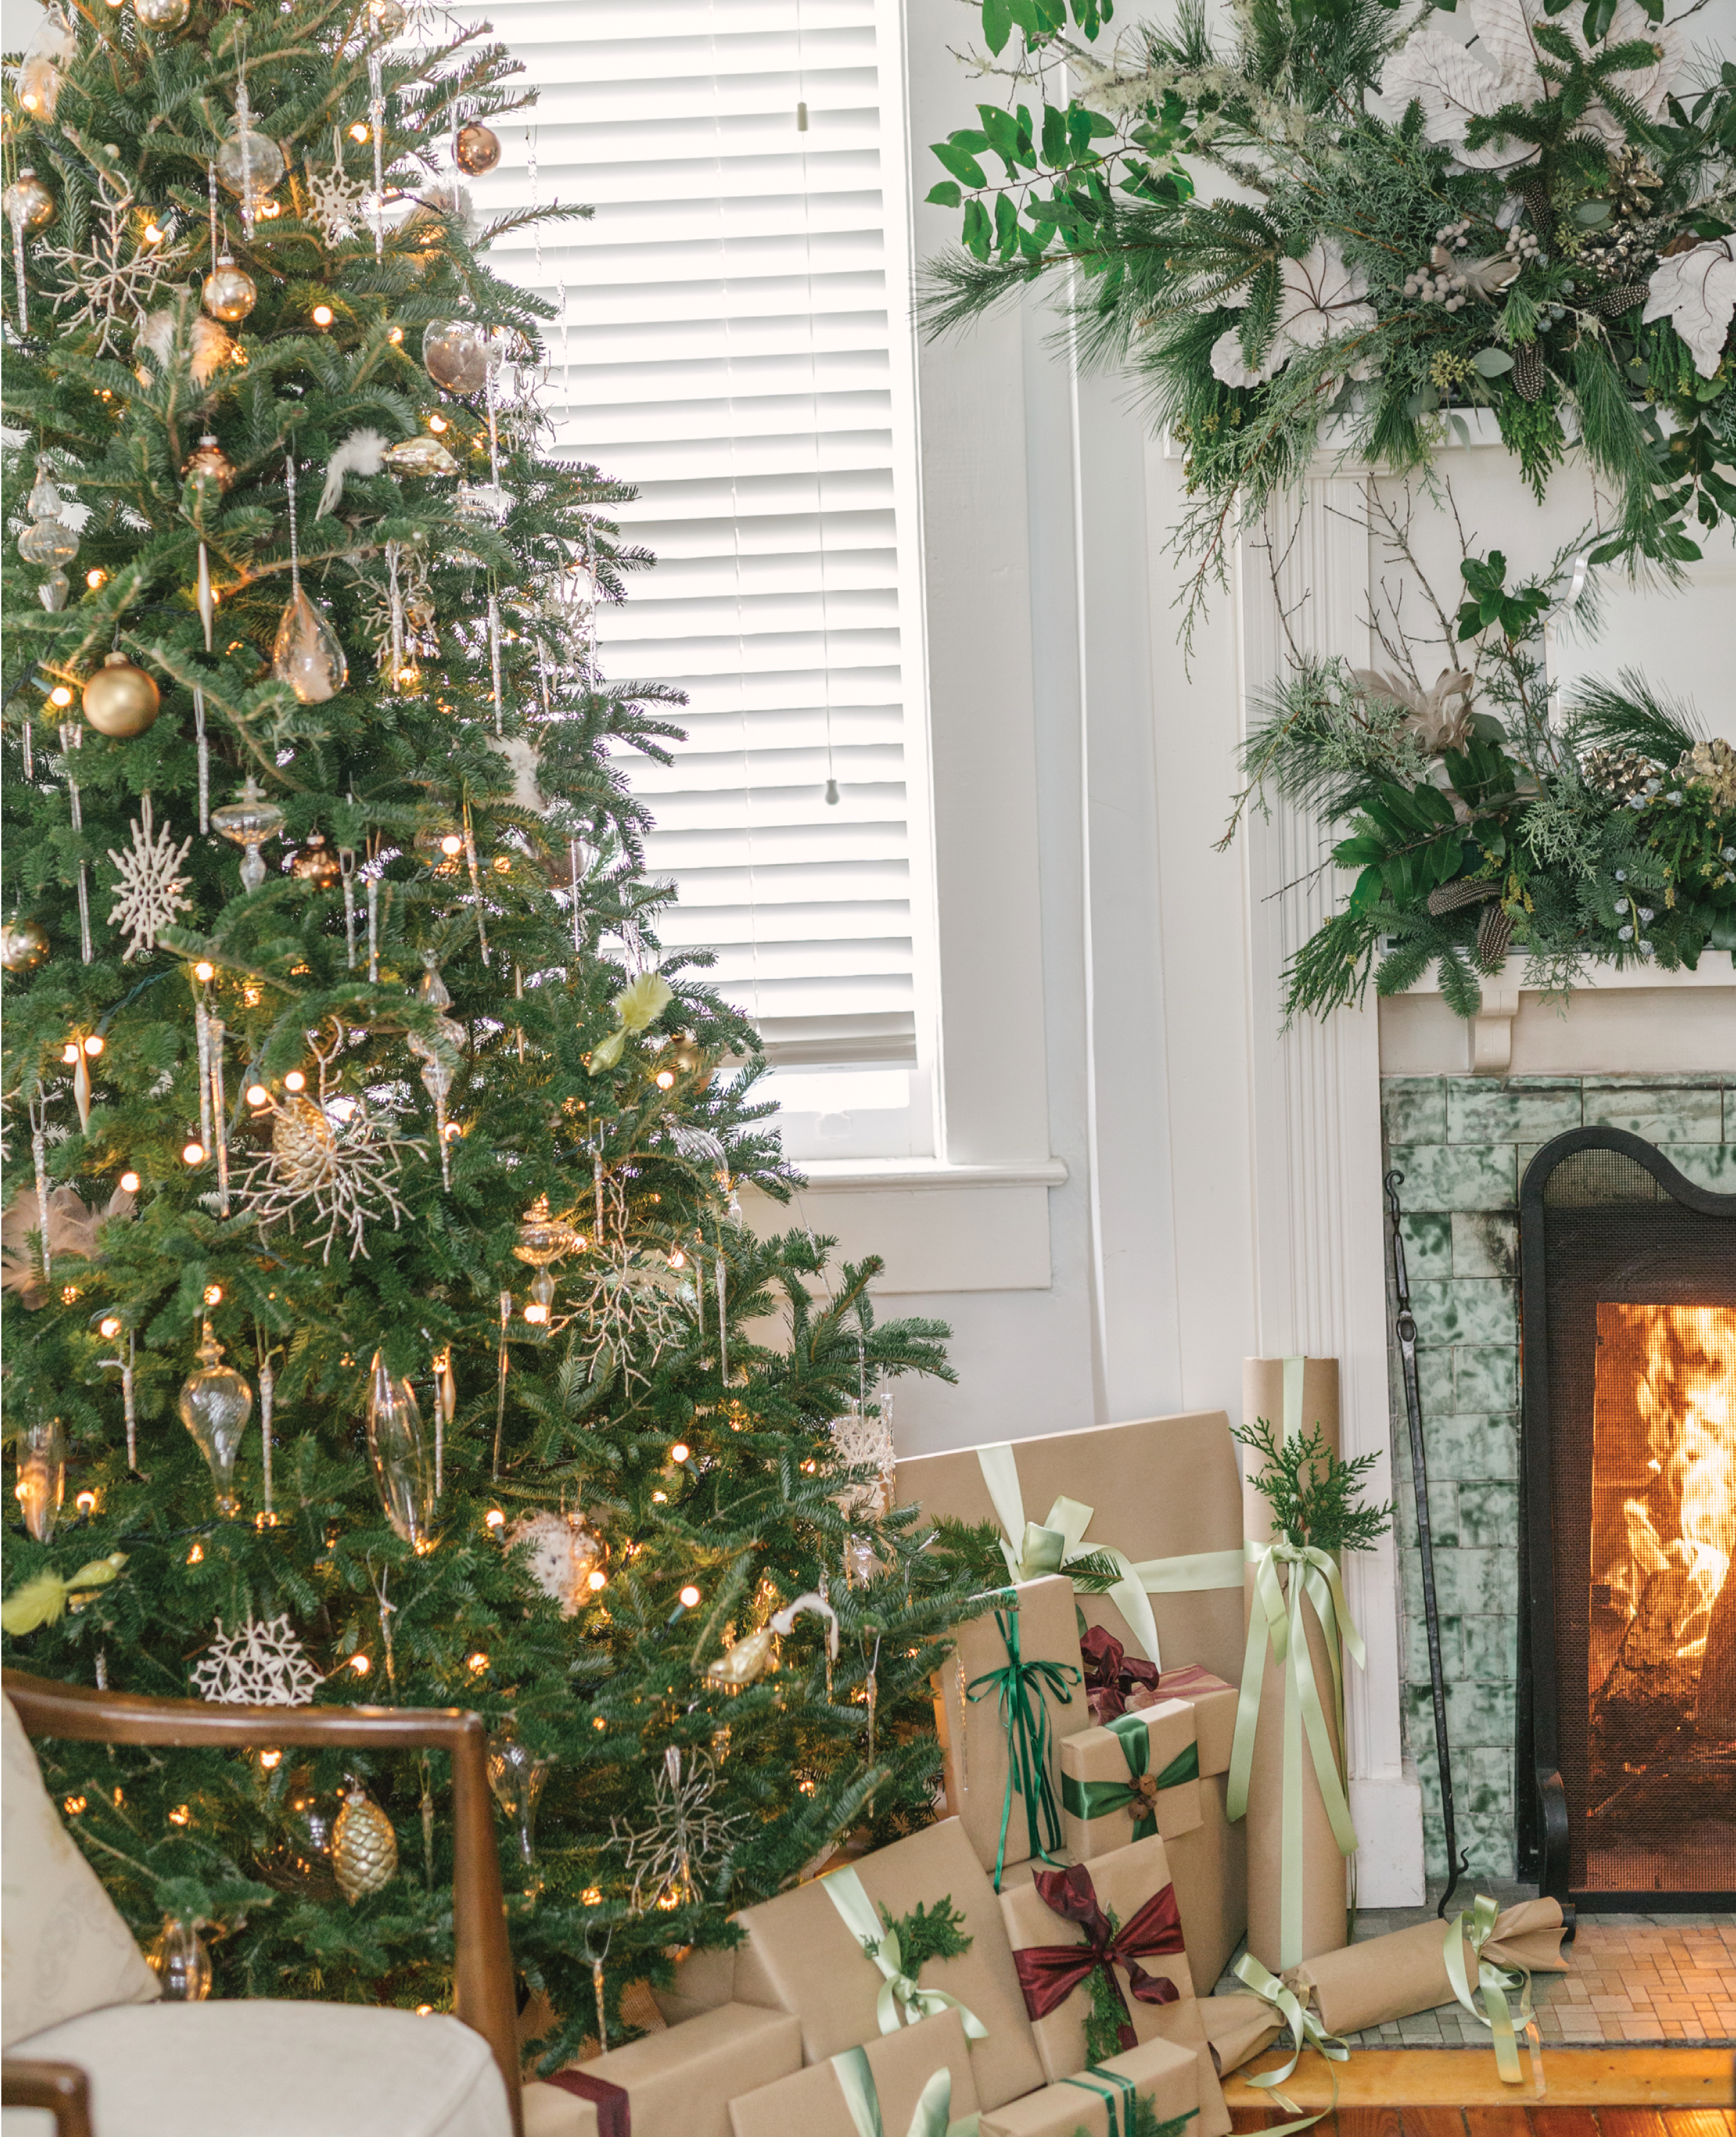 First lights strung at varying depths, then showcase ornaments in spot where they can be best seen and enjoyed, fill in evenly with baubles, and finally glass icicles.